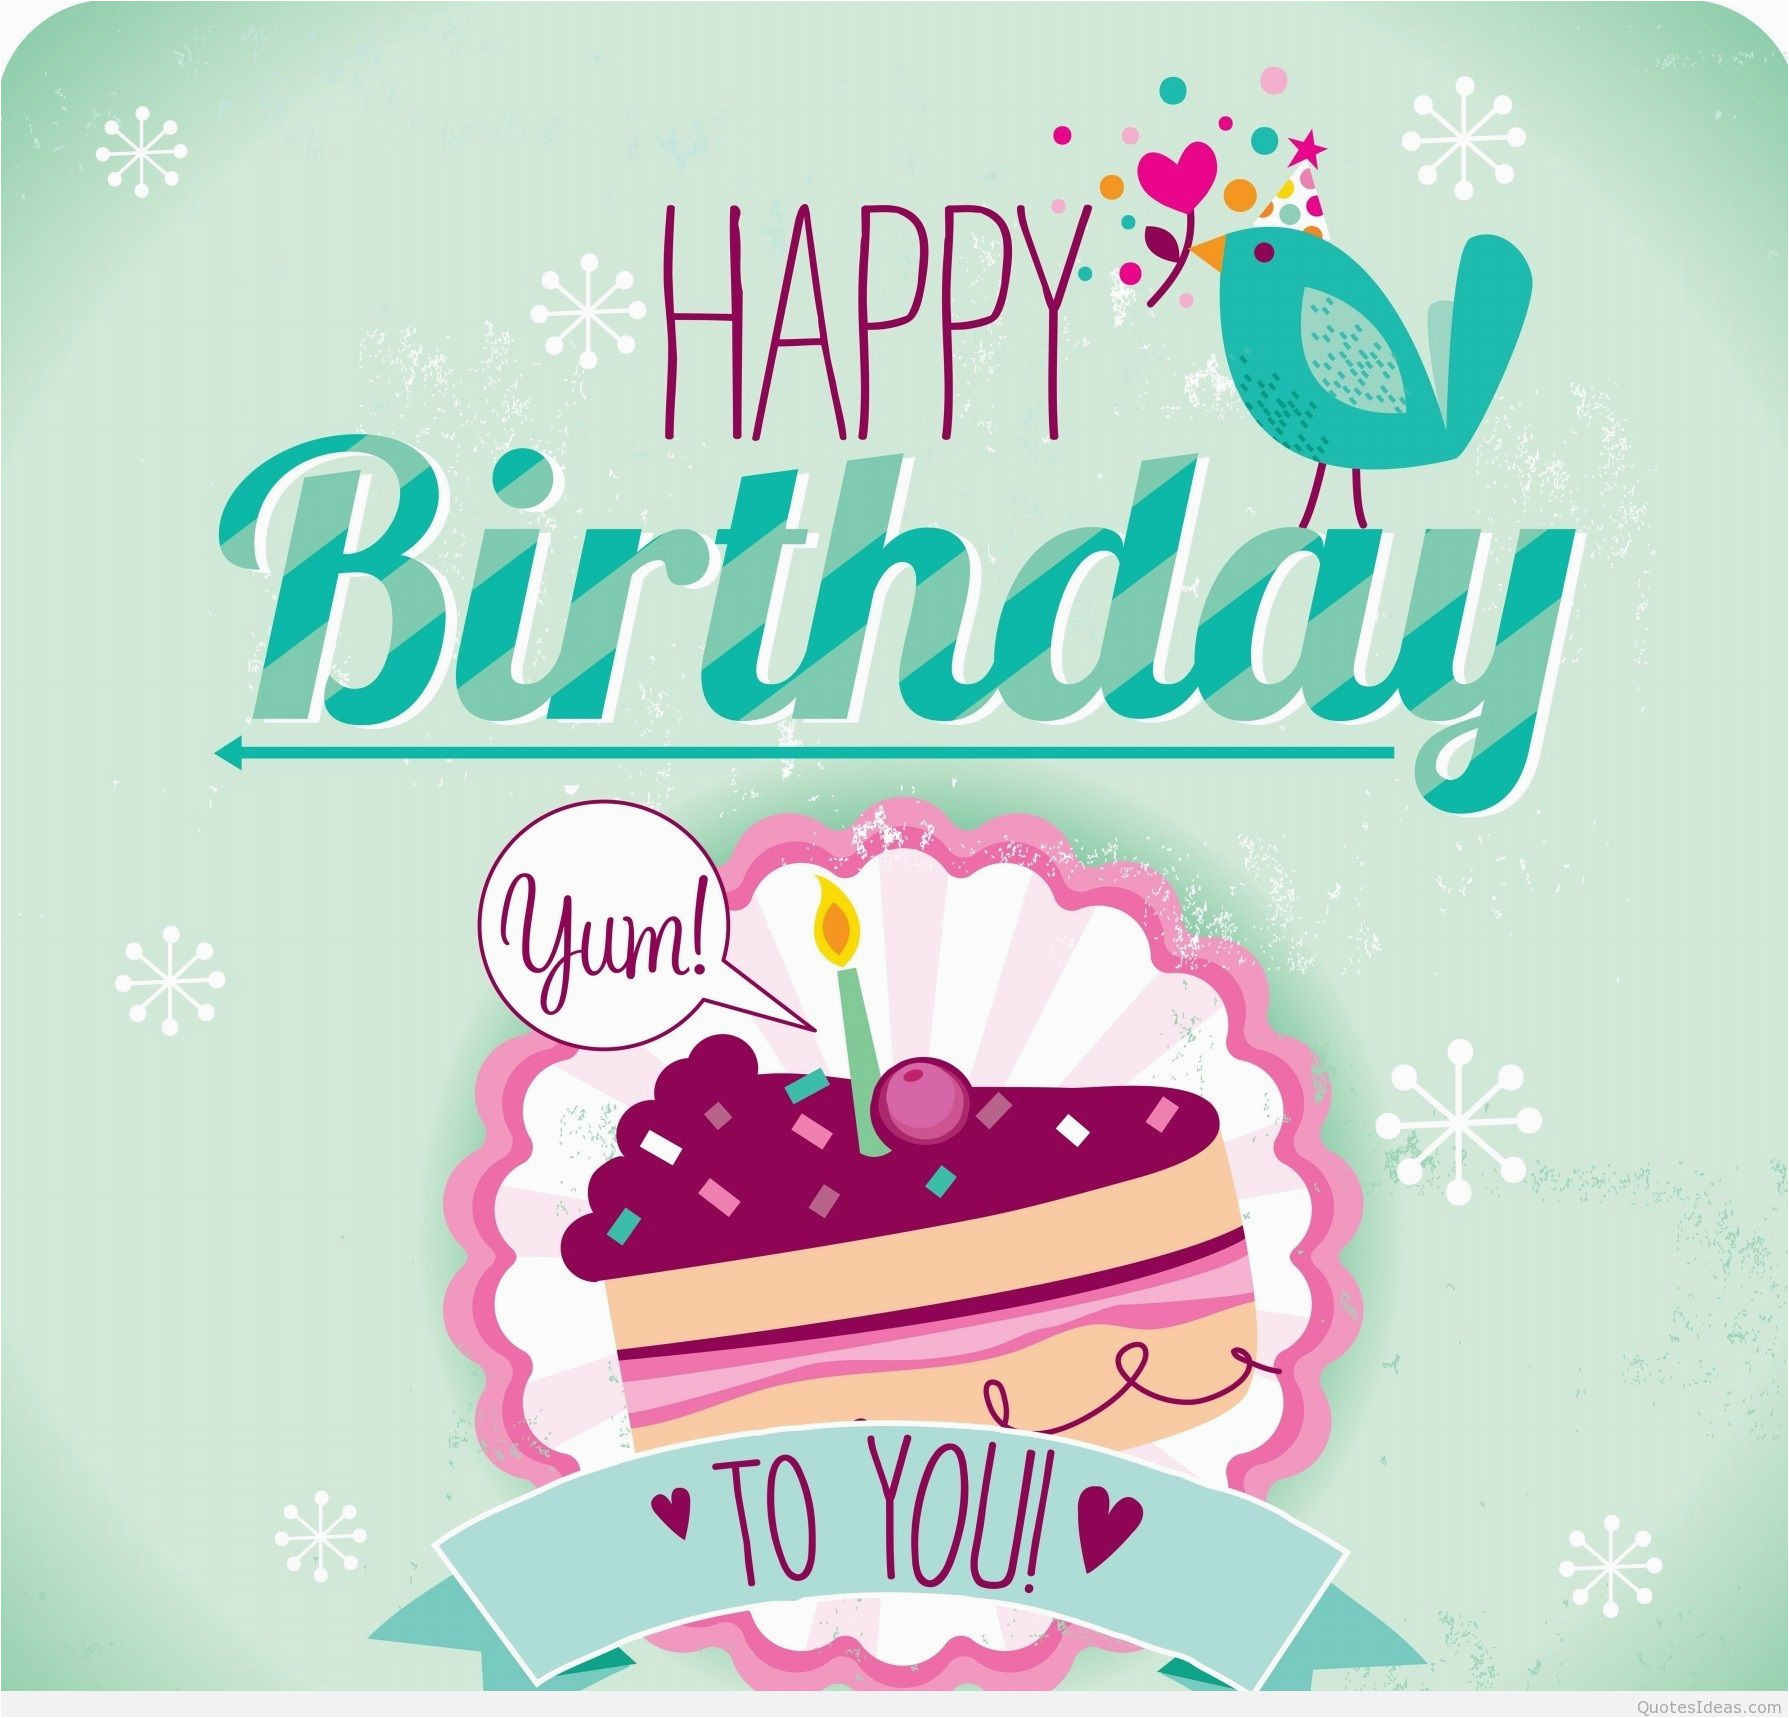 happy birthday cards wishes messages 2015 2016